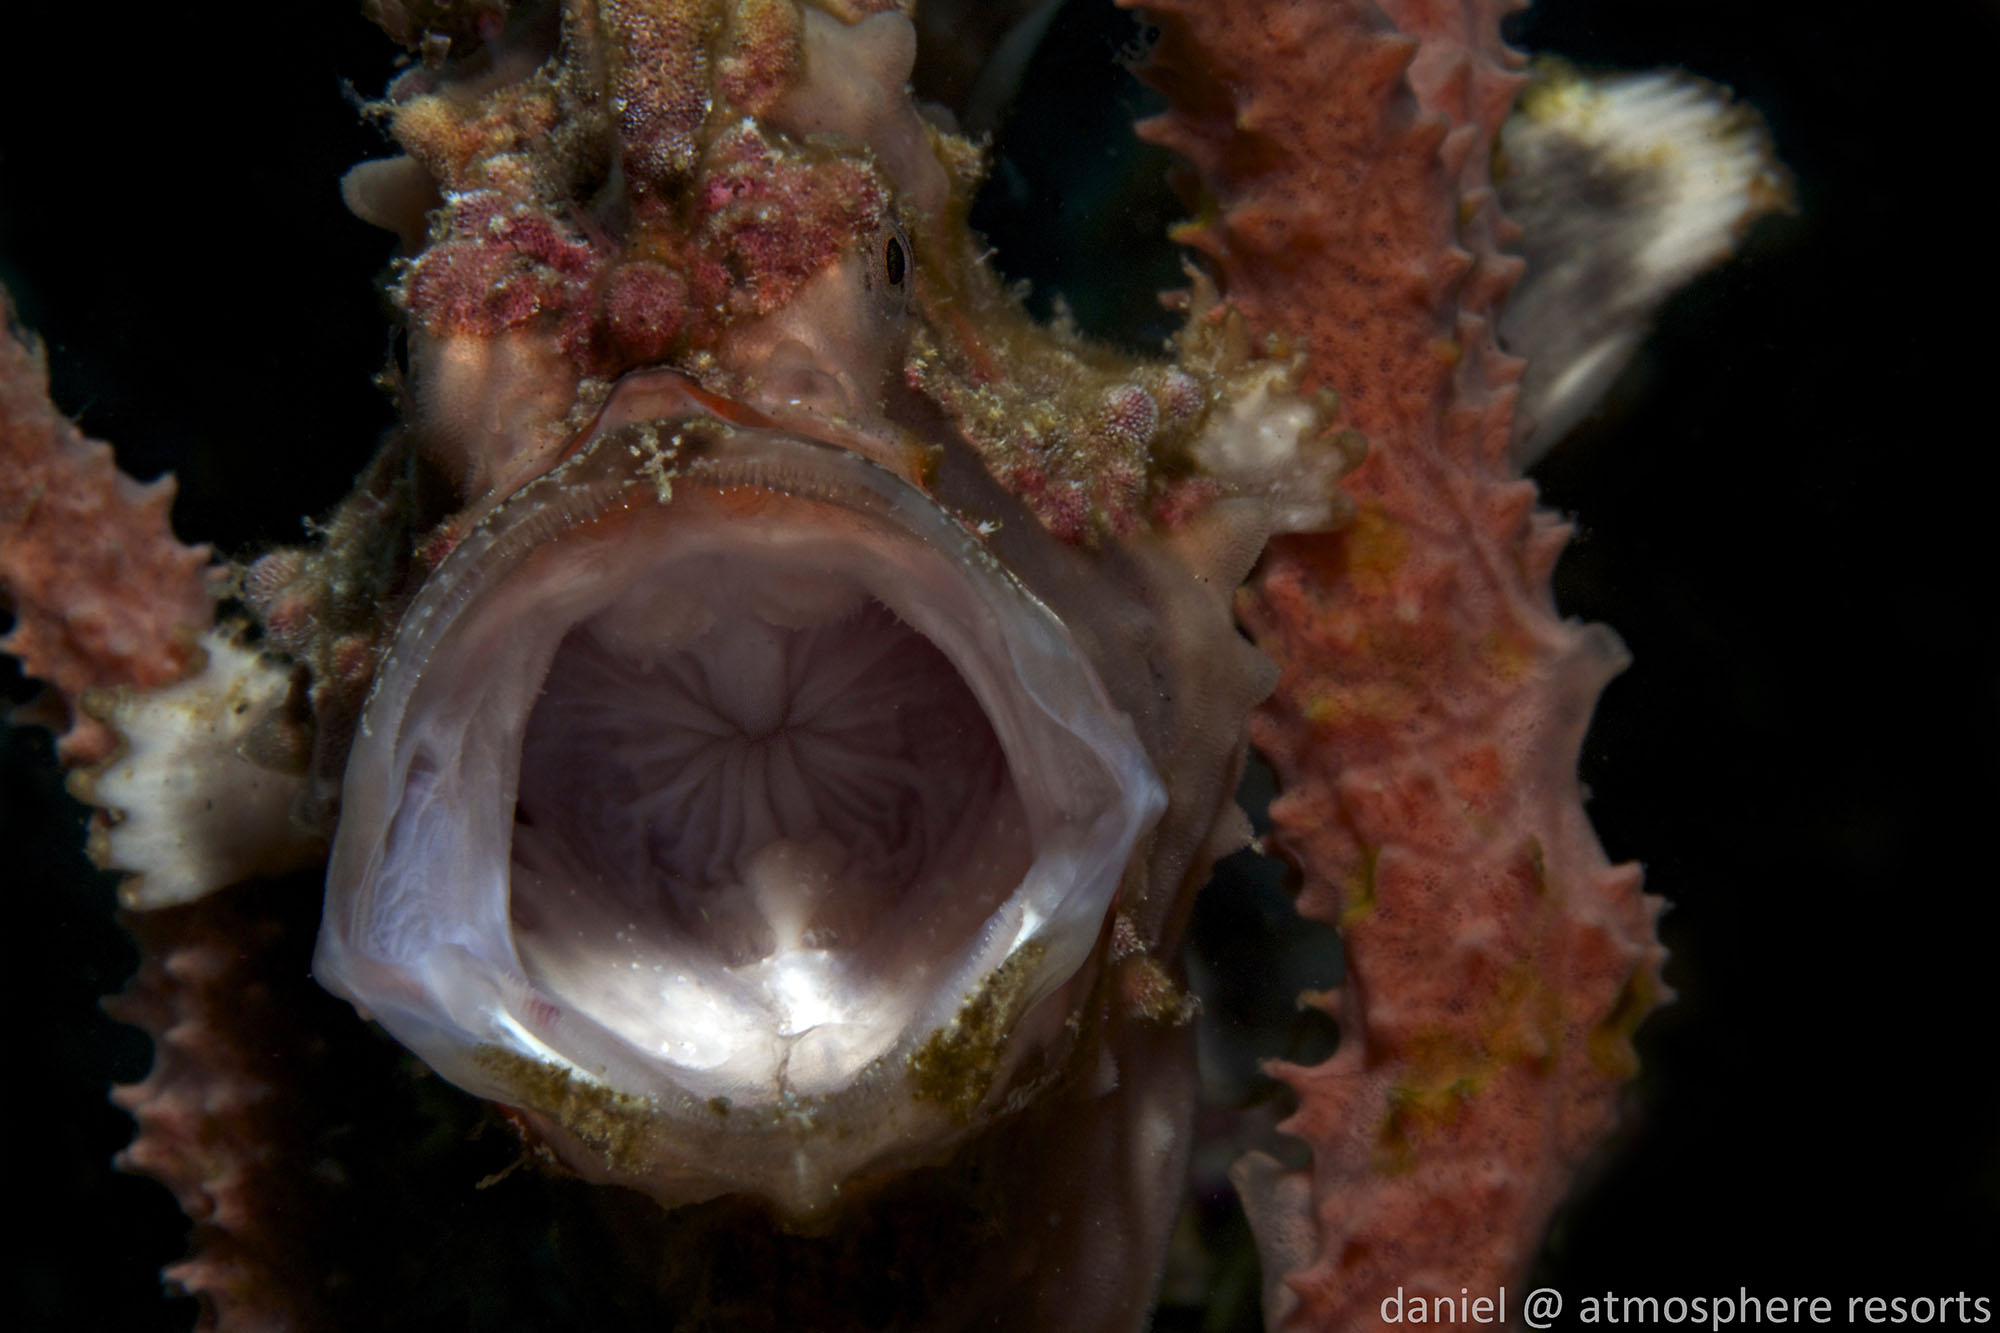 Clown frogfish jawning by Daniel Geary at Atmosphere Resort Philippines